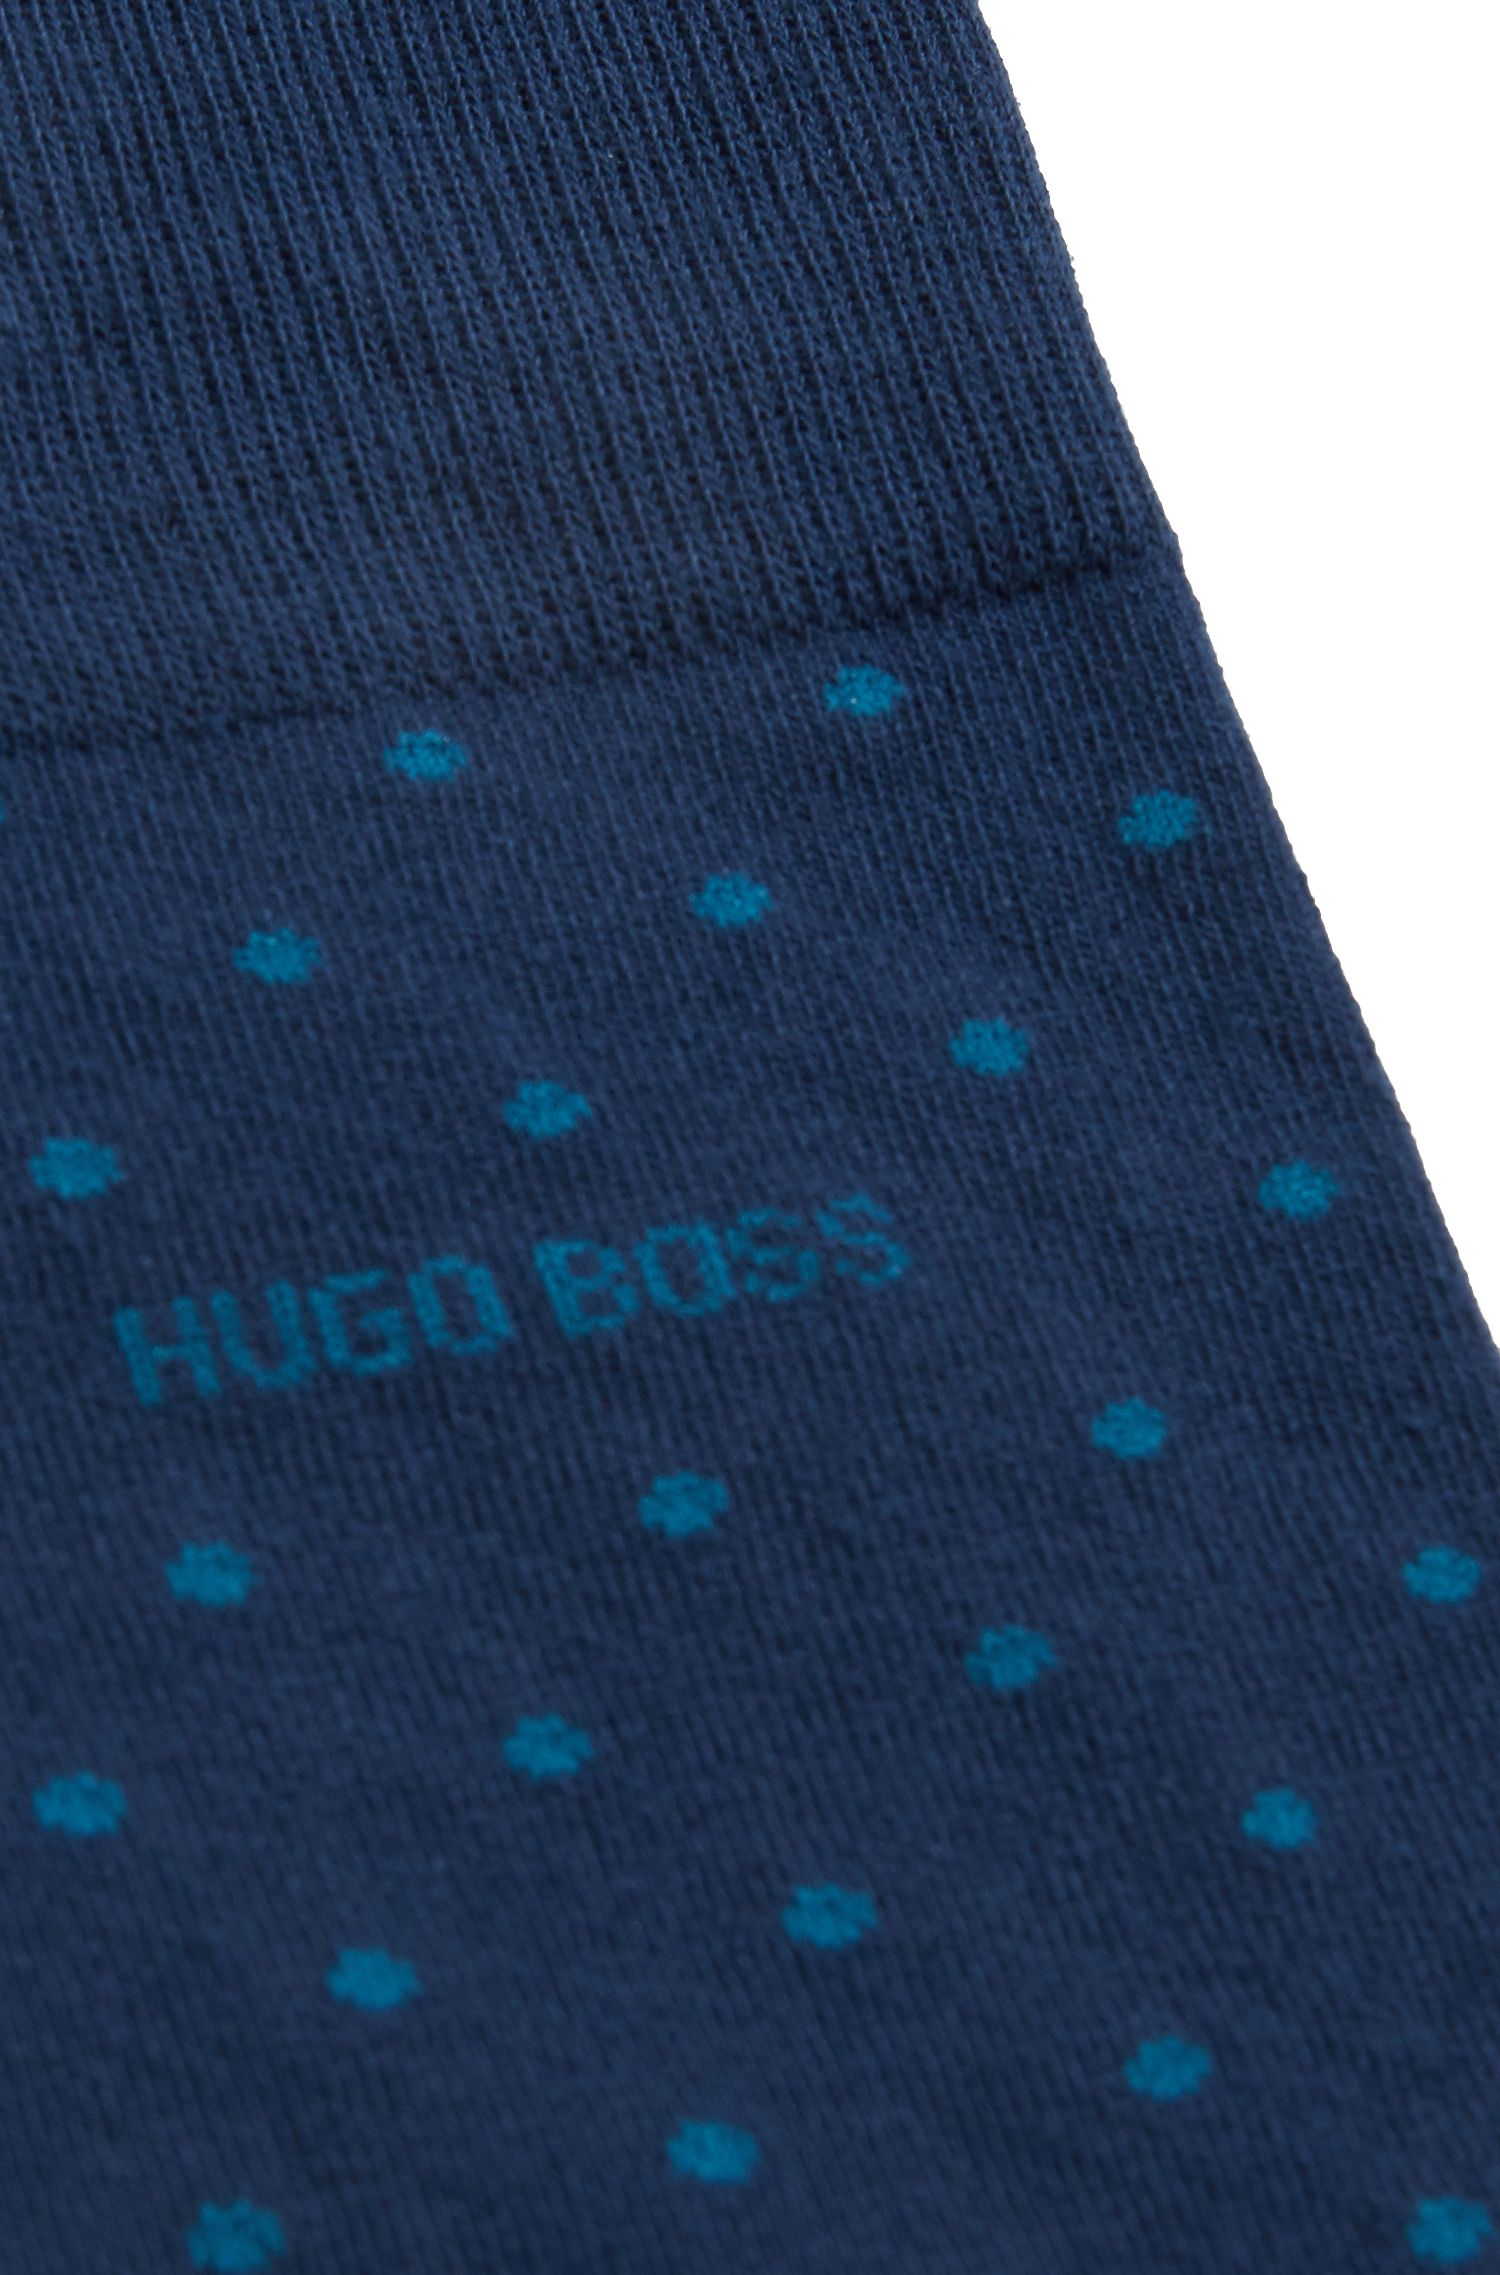 Regular-length socks in a cotton blend